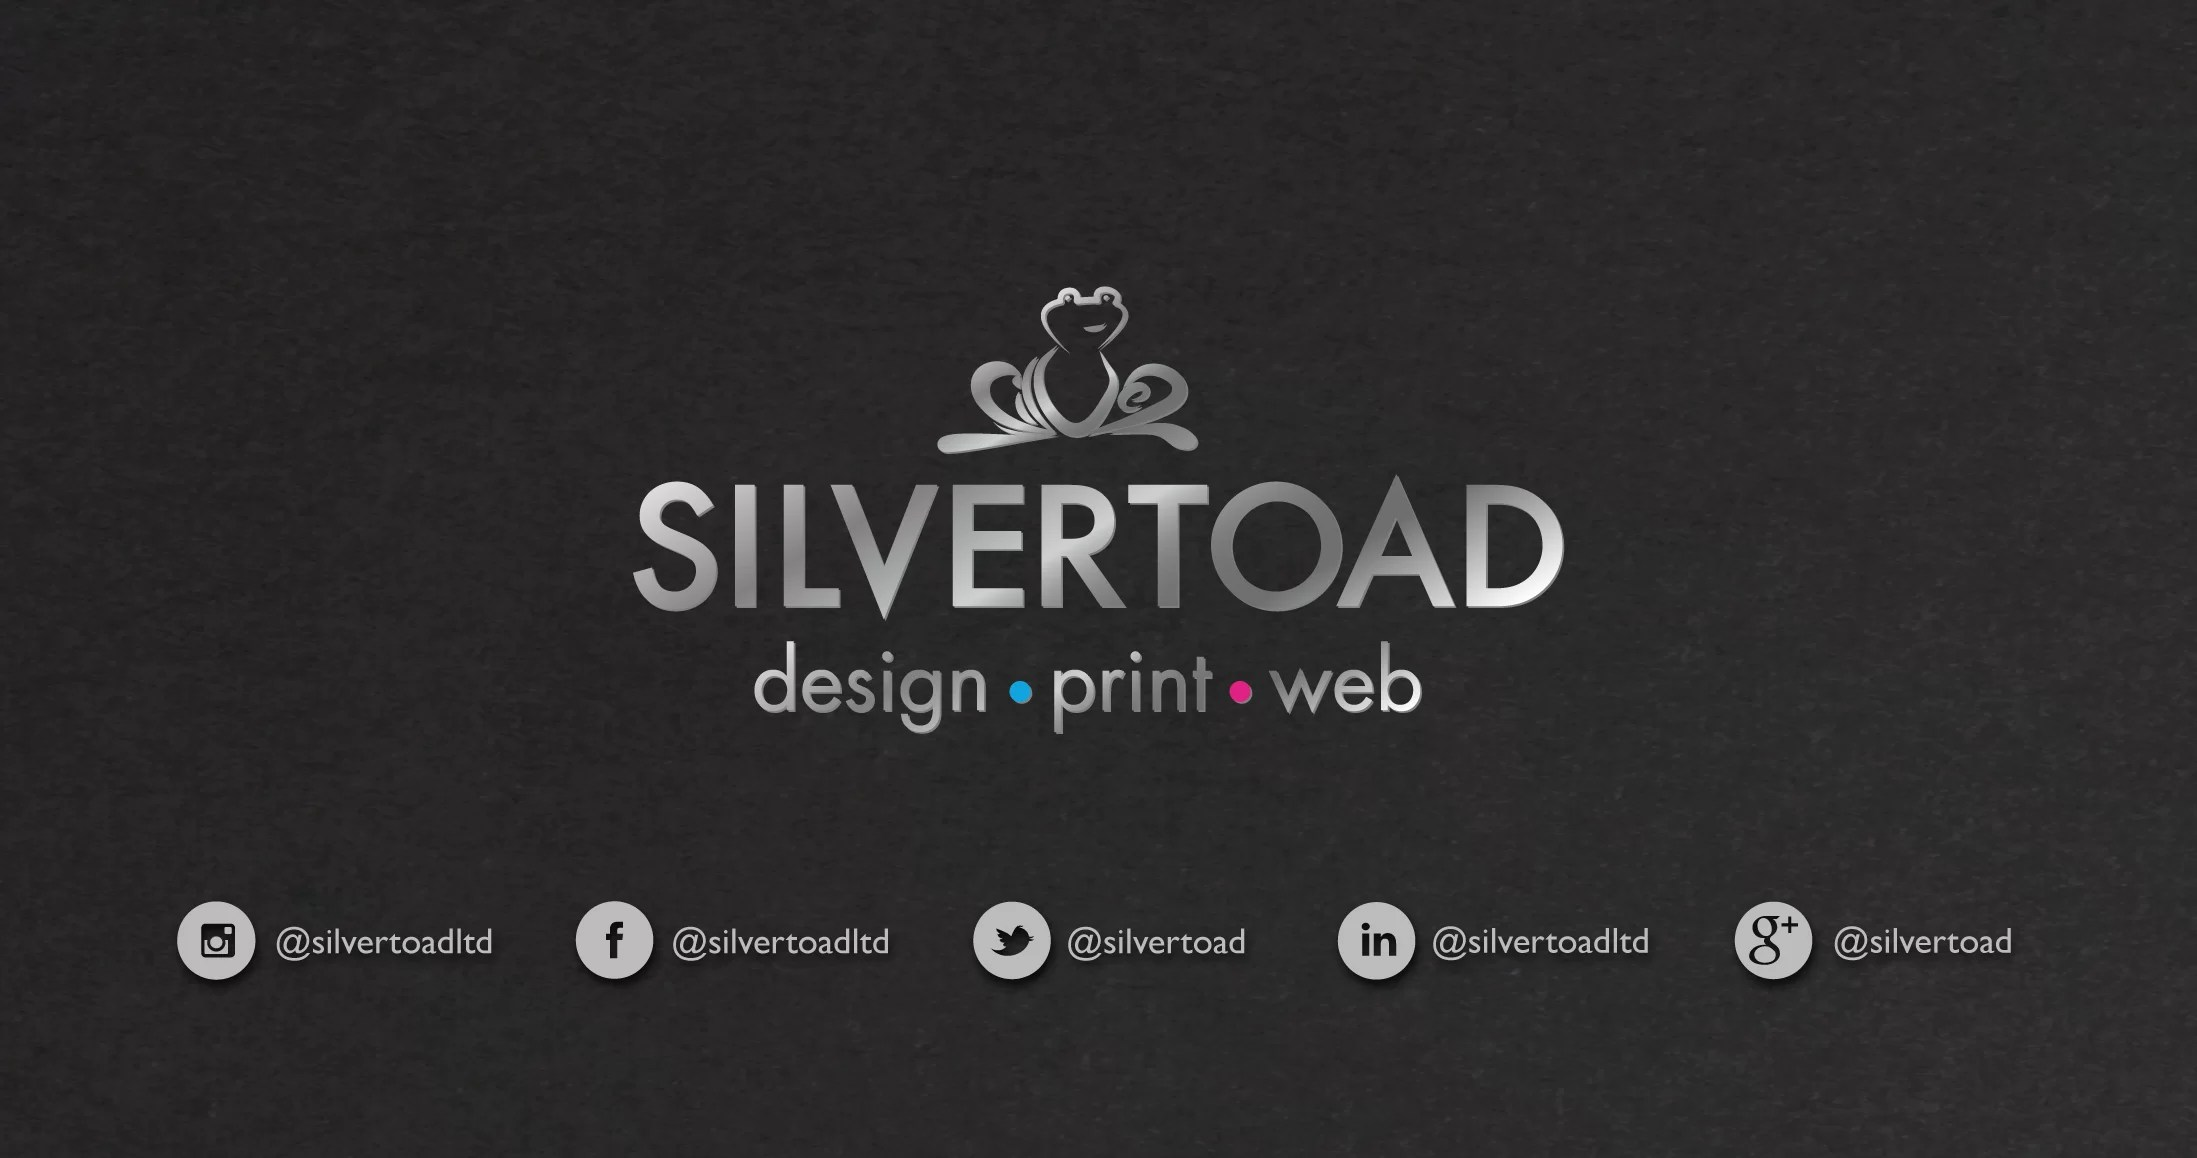 Silvertoad Mark 10 Year Anniversary With New Look!